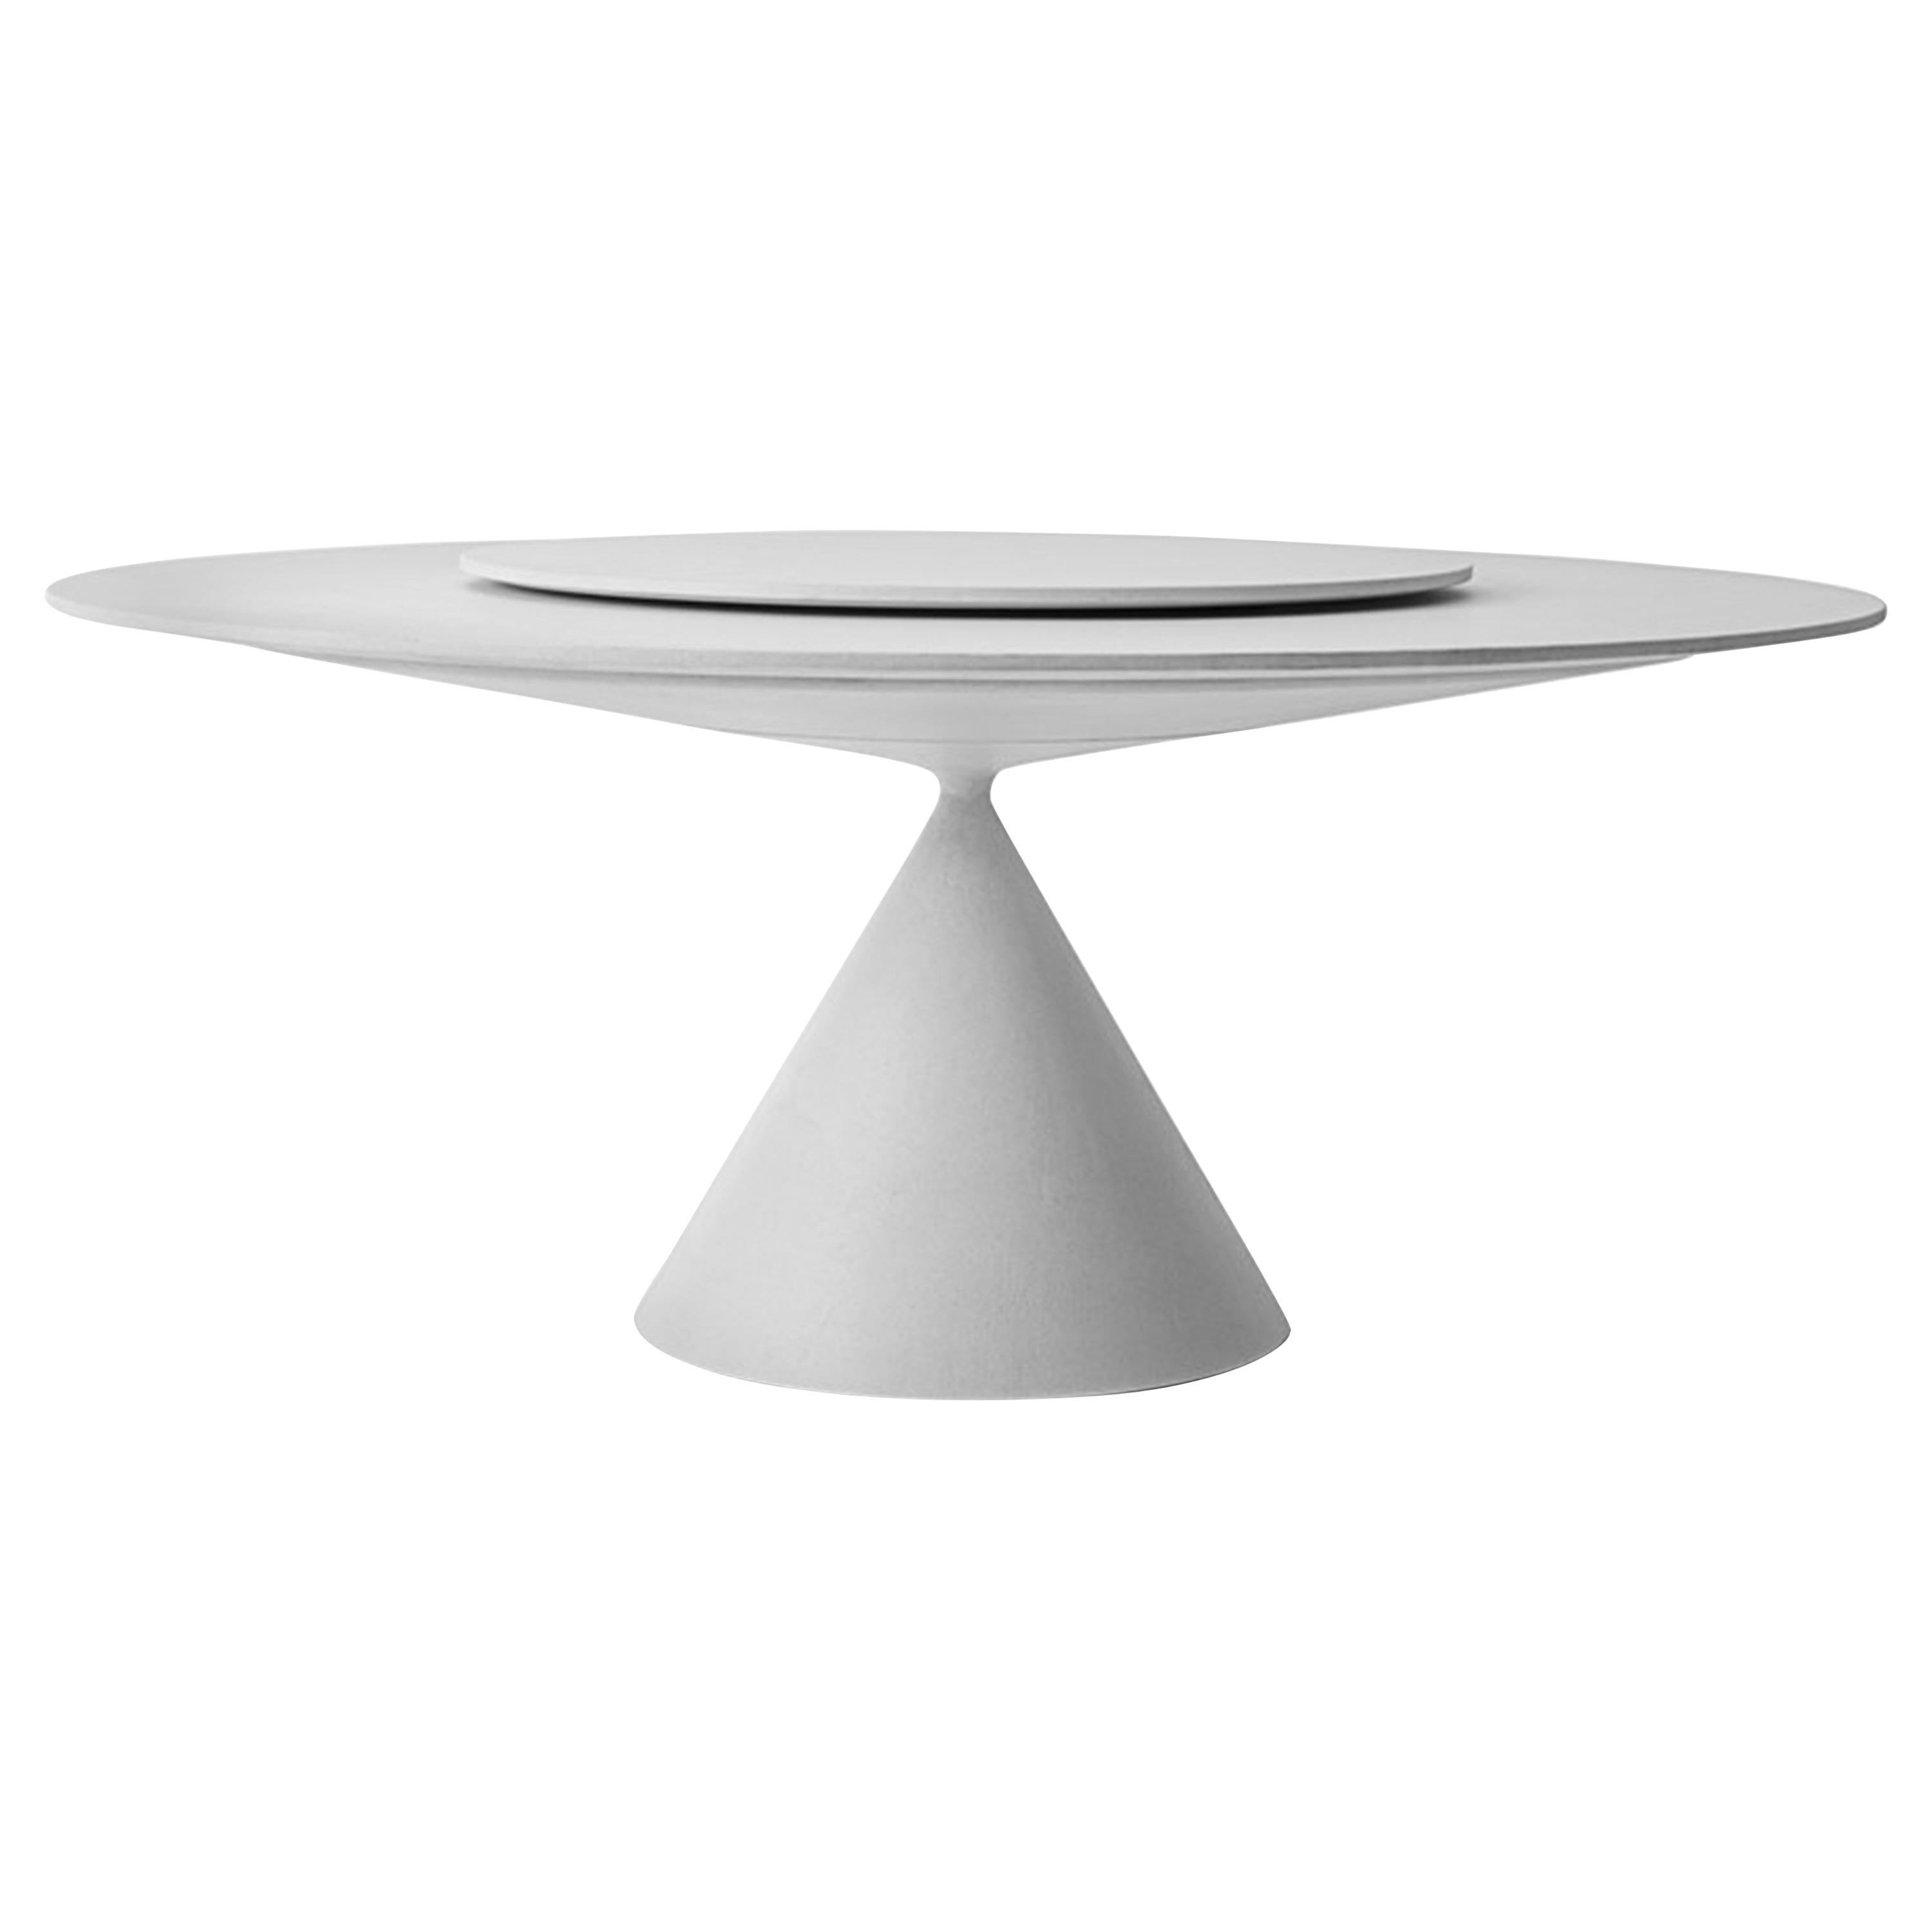 Desalto Round Clay Table with Table with Lazy Susan Flus Designed by Marc Krusin